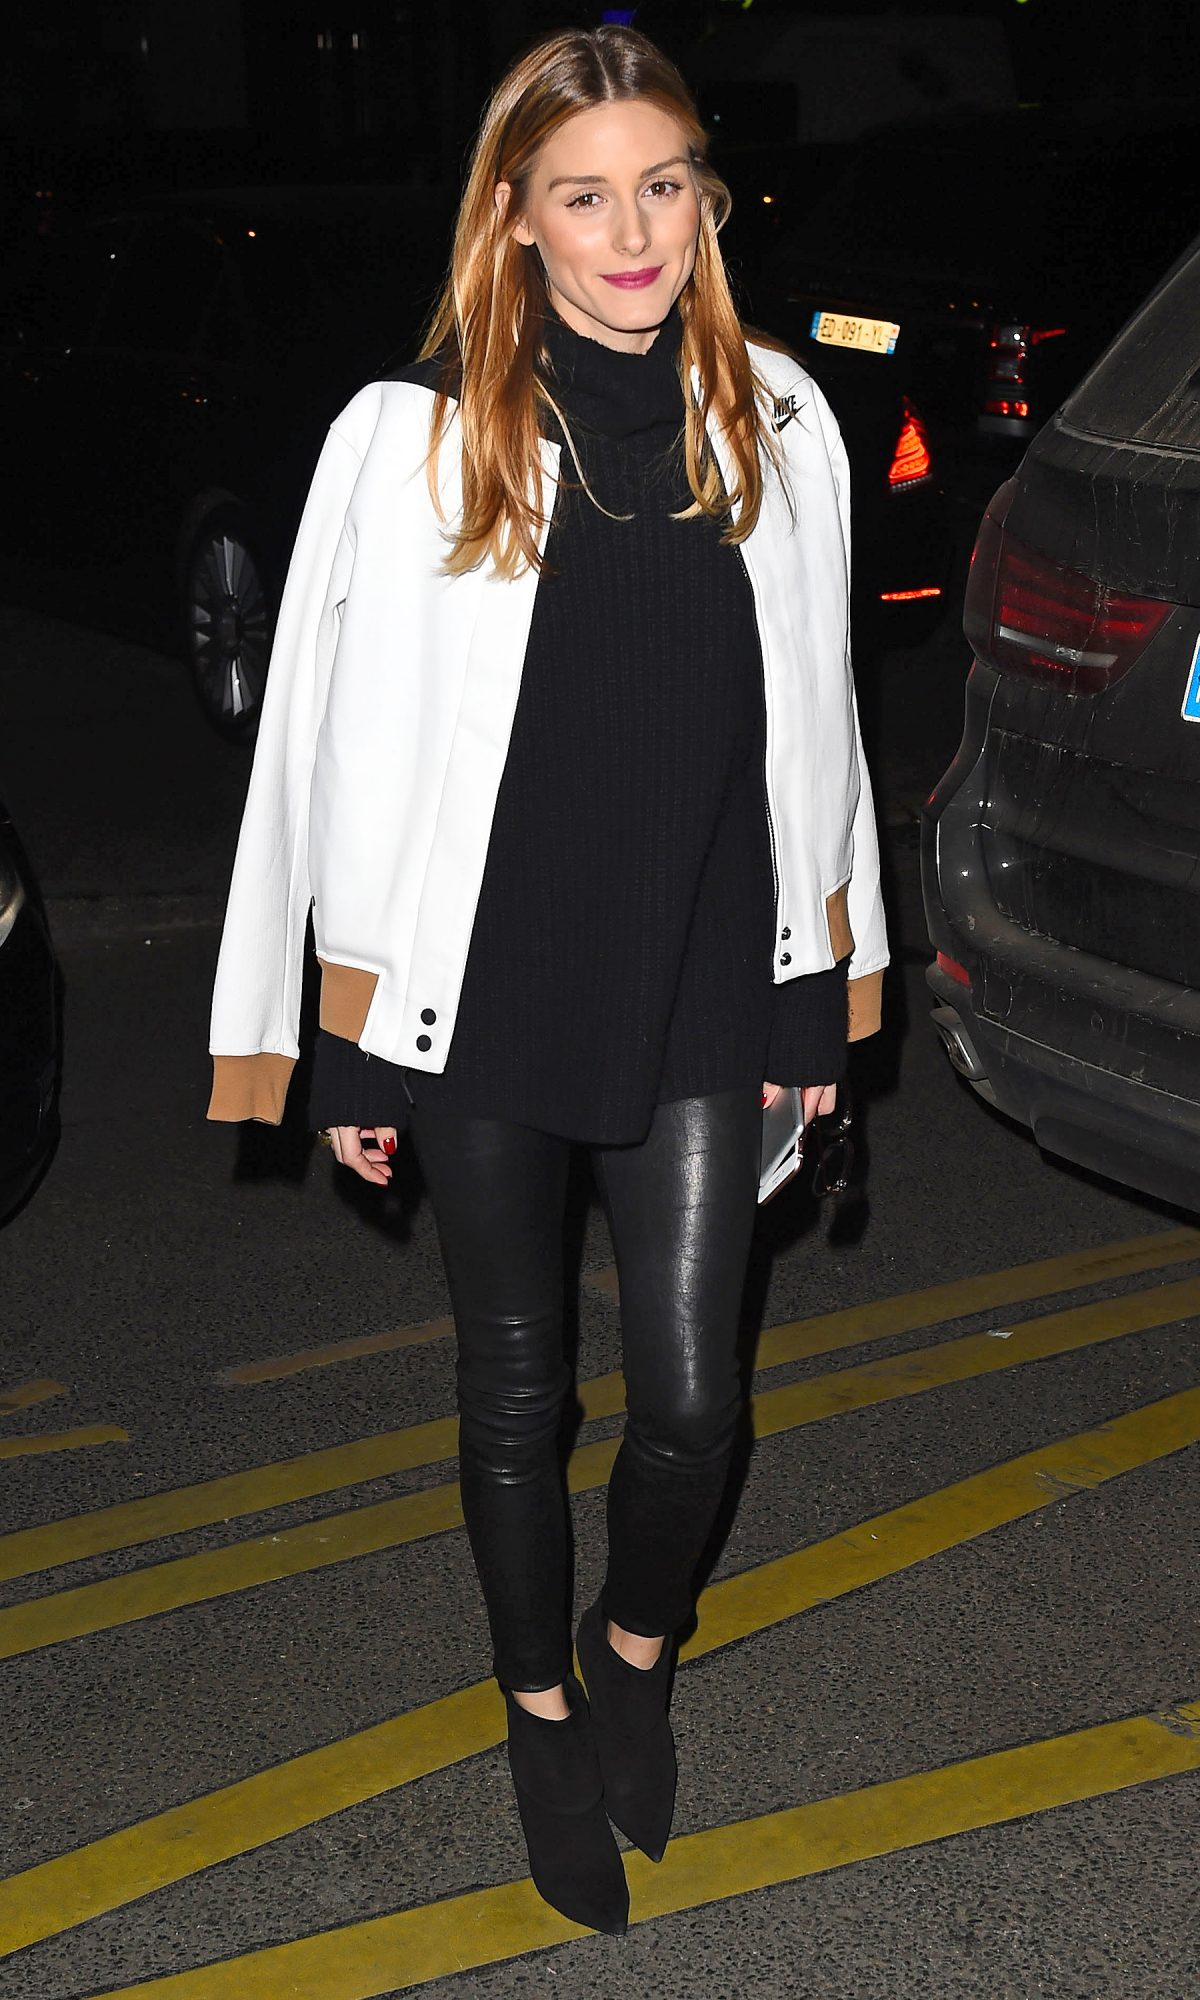 Olivia Palermo is seen at the Royal Monceau hotel in Paris